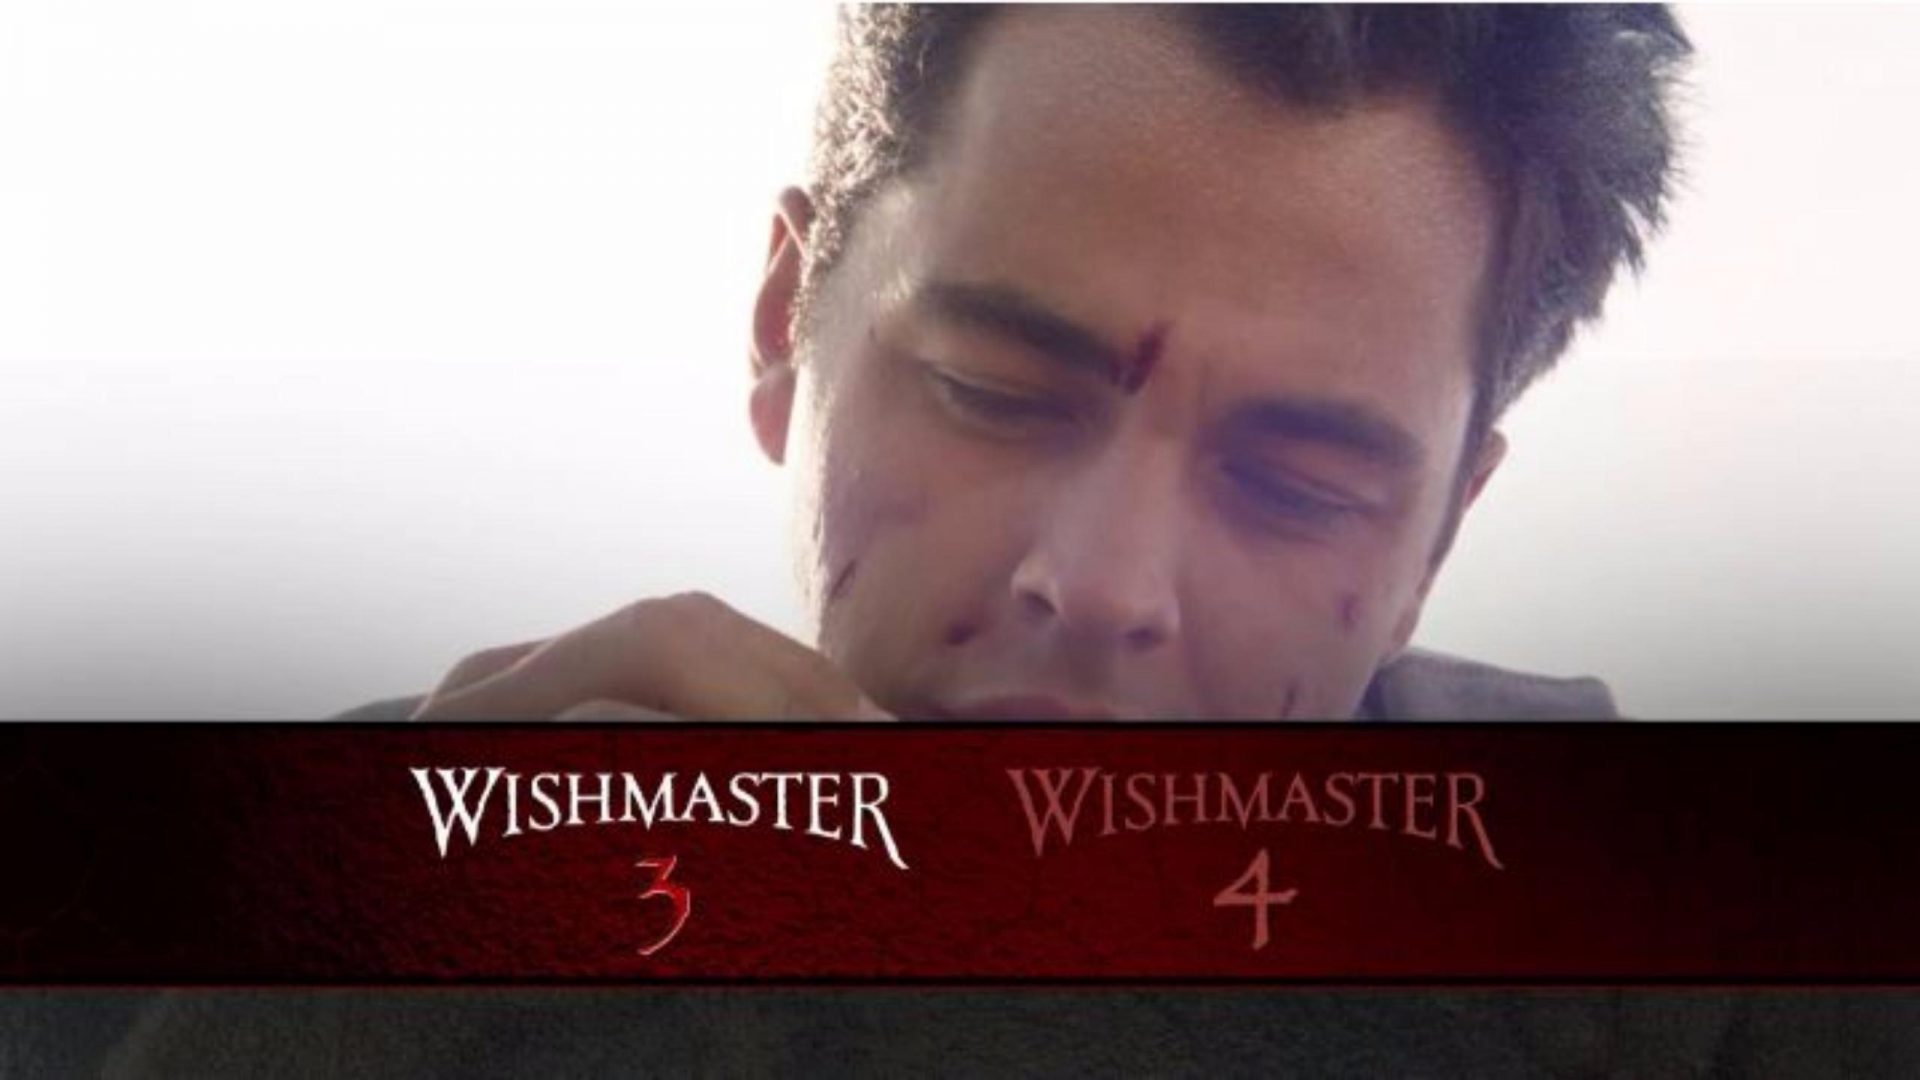 Wishmaster 3: Beyond the Gates of Hell | Wishmaster 4: The Prophecy Fulfilled | Blu-ray Collection: Disc Three (2017)